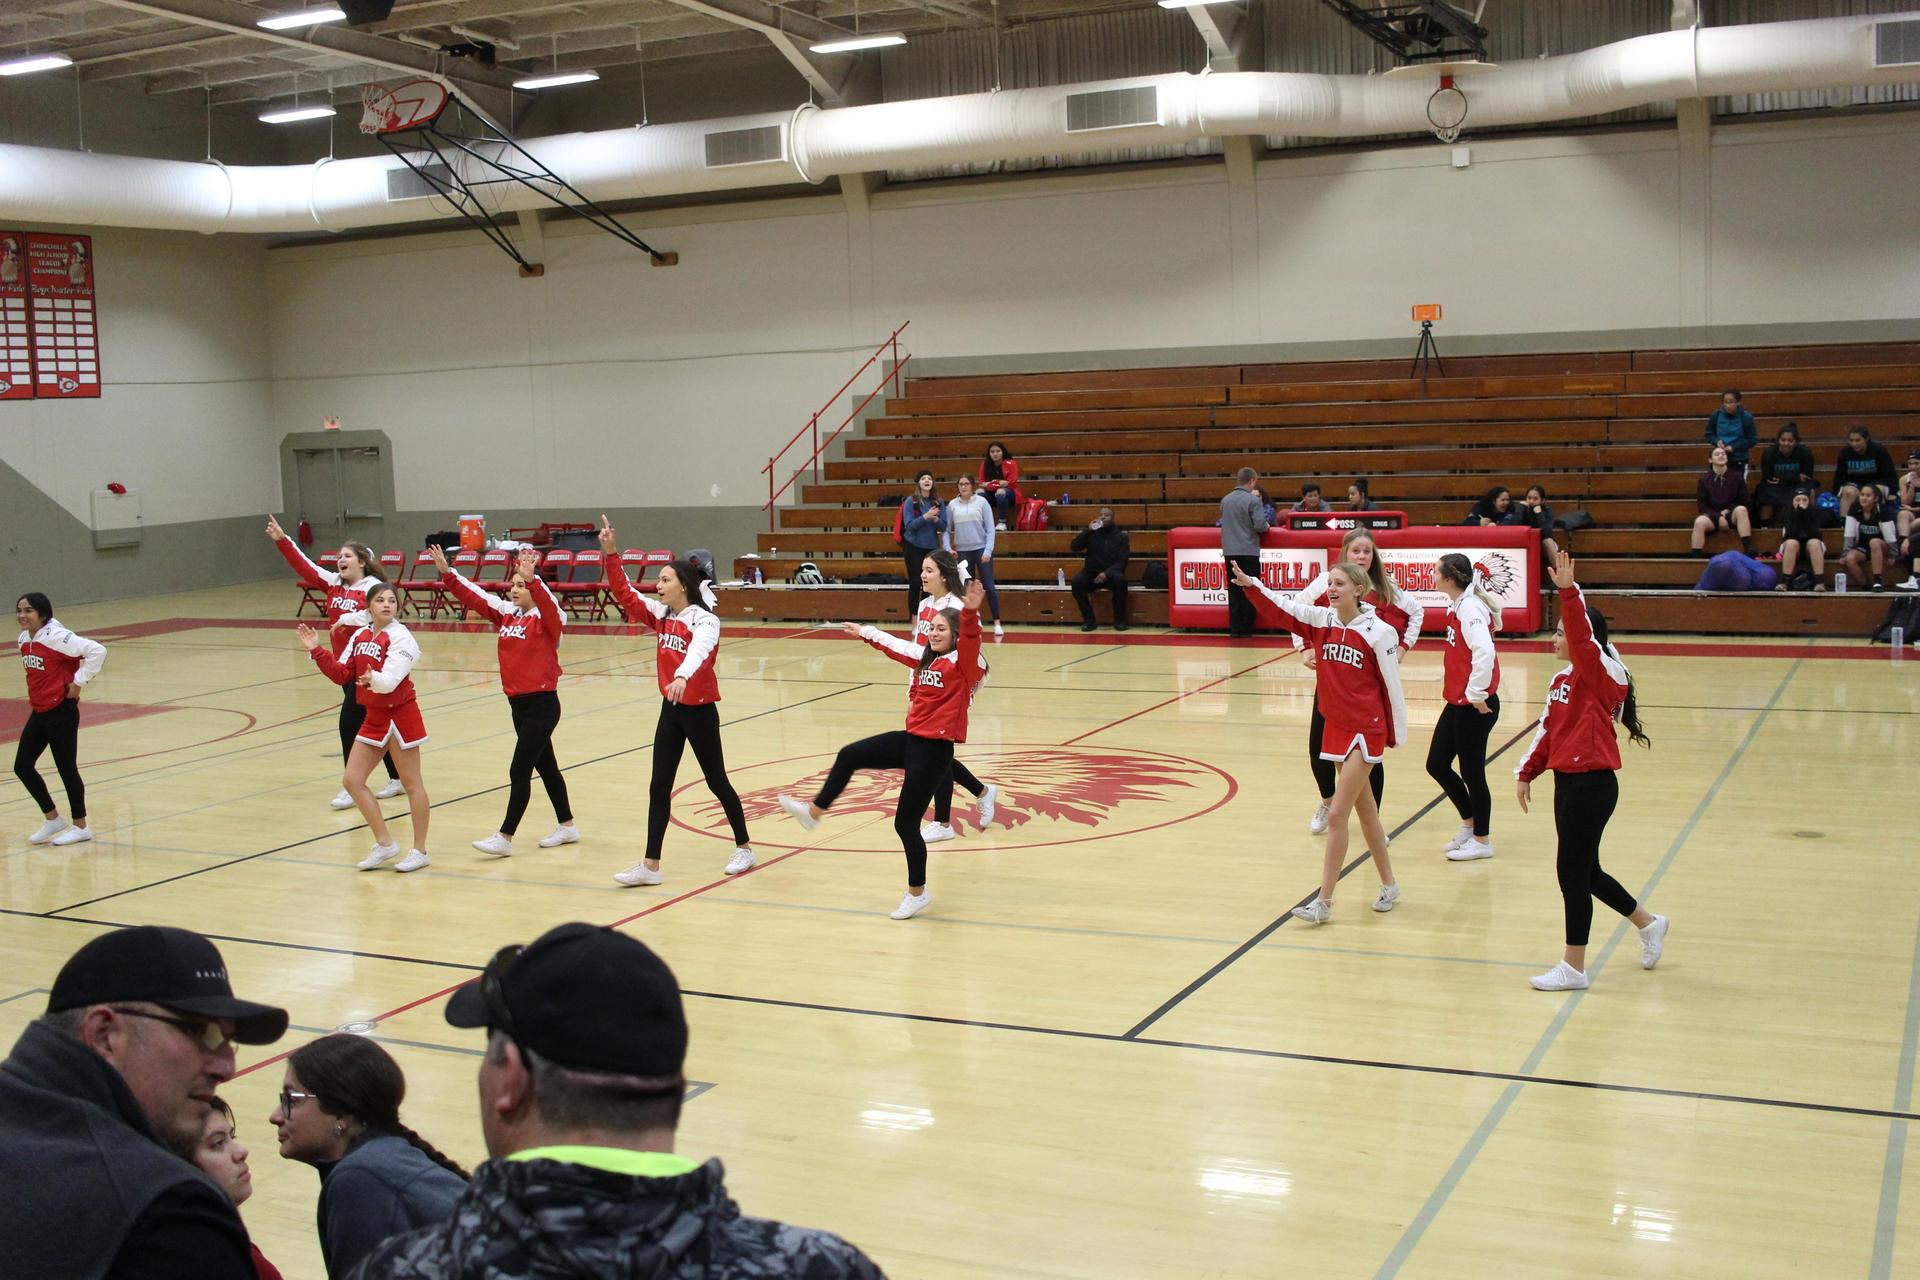 Cheer at Orange Cove basketball game.